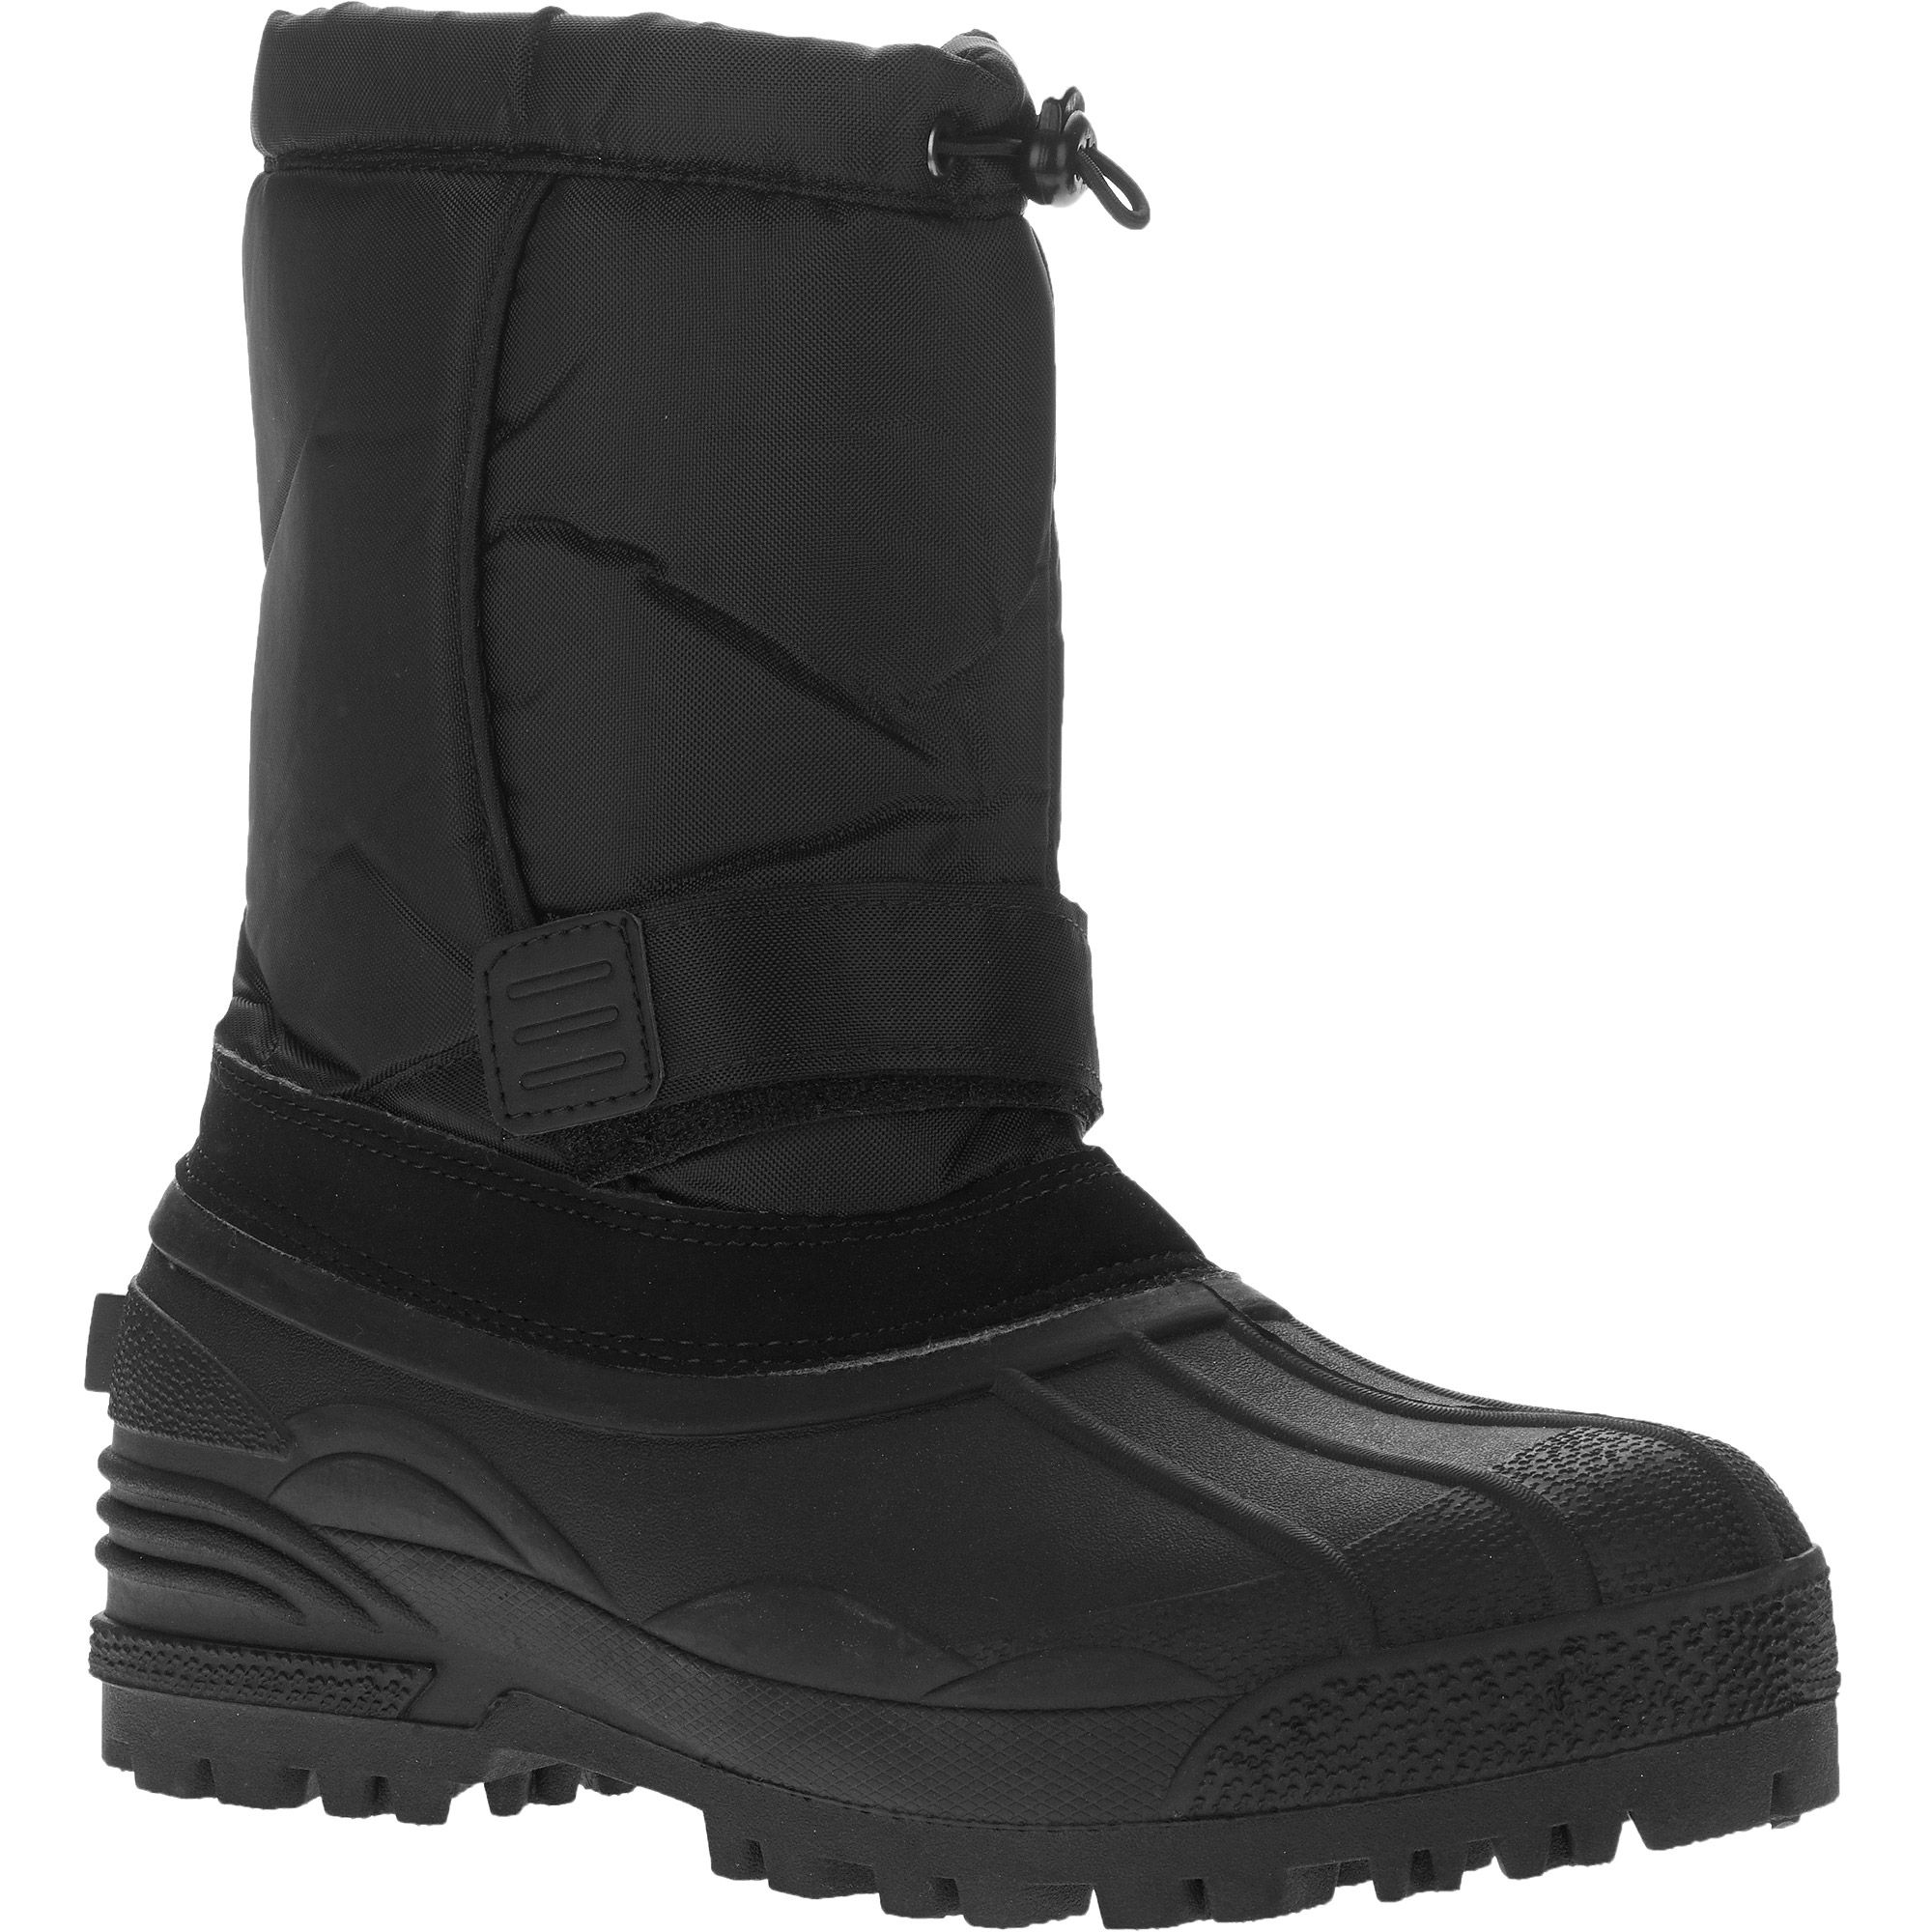 Mens Snow Boots Clearance zCMqDtRP